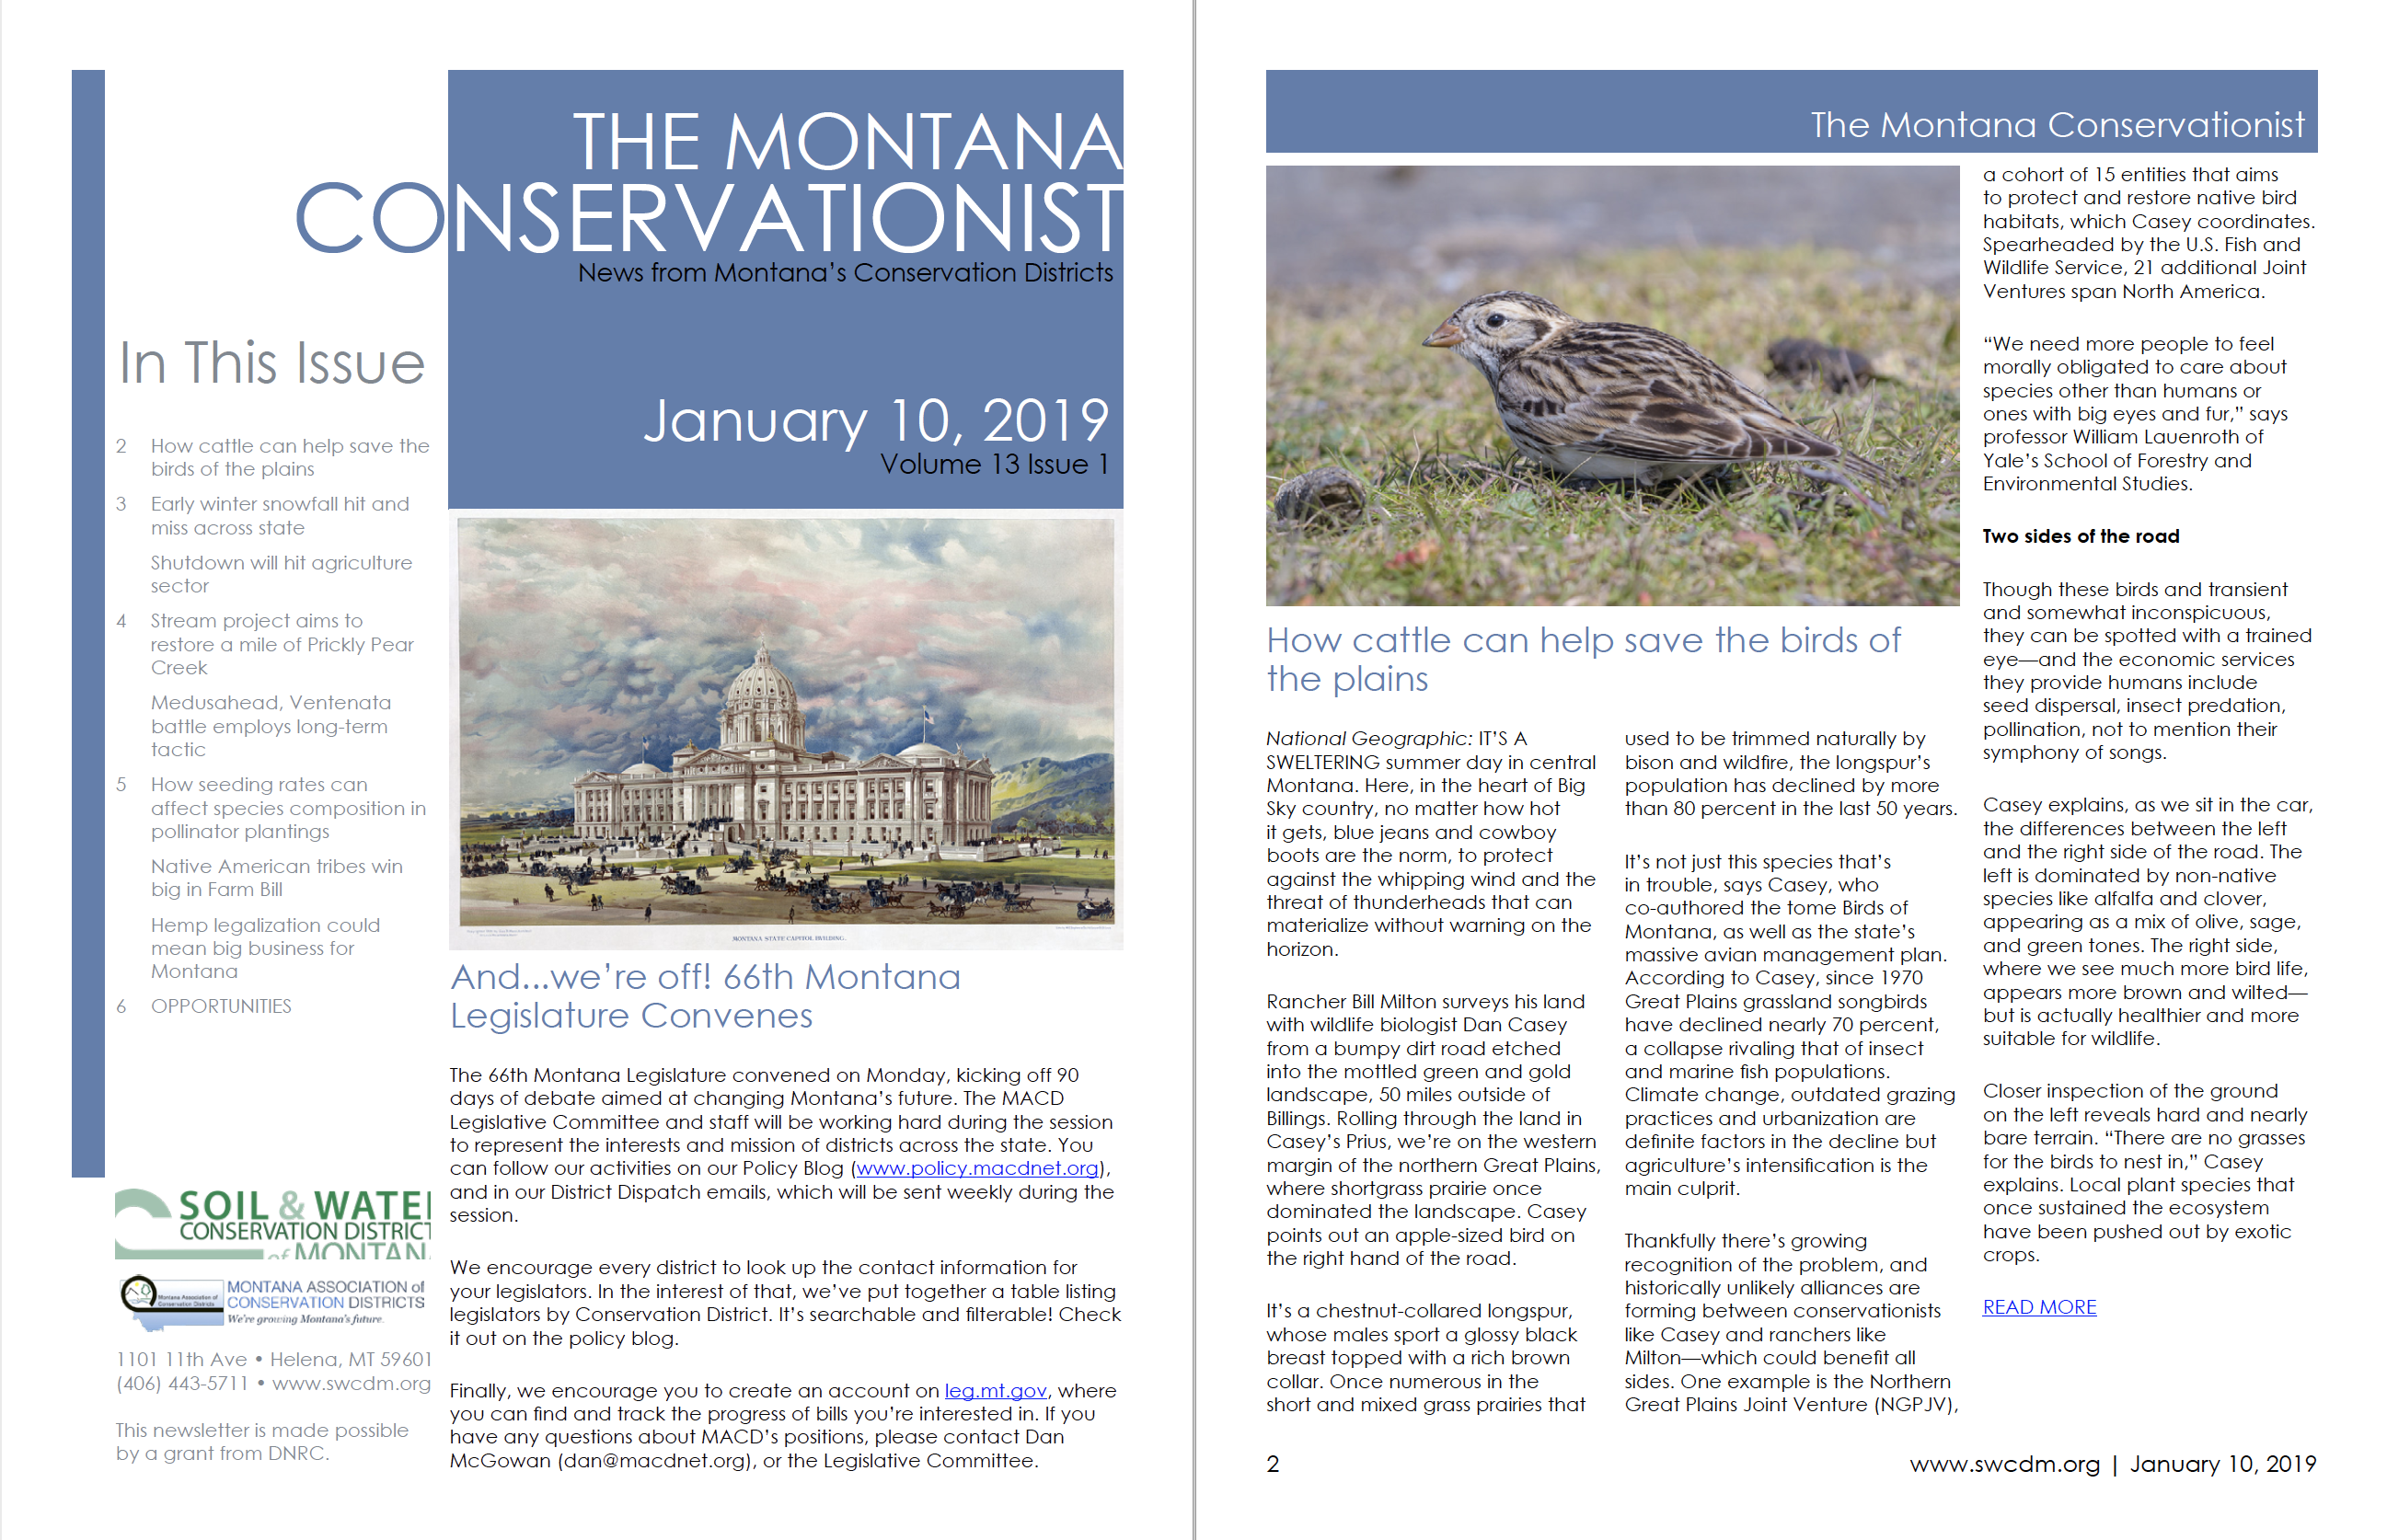 The Montana Conservationist January 10, 2019